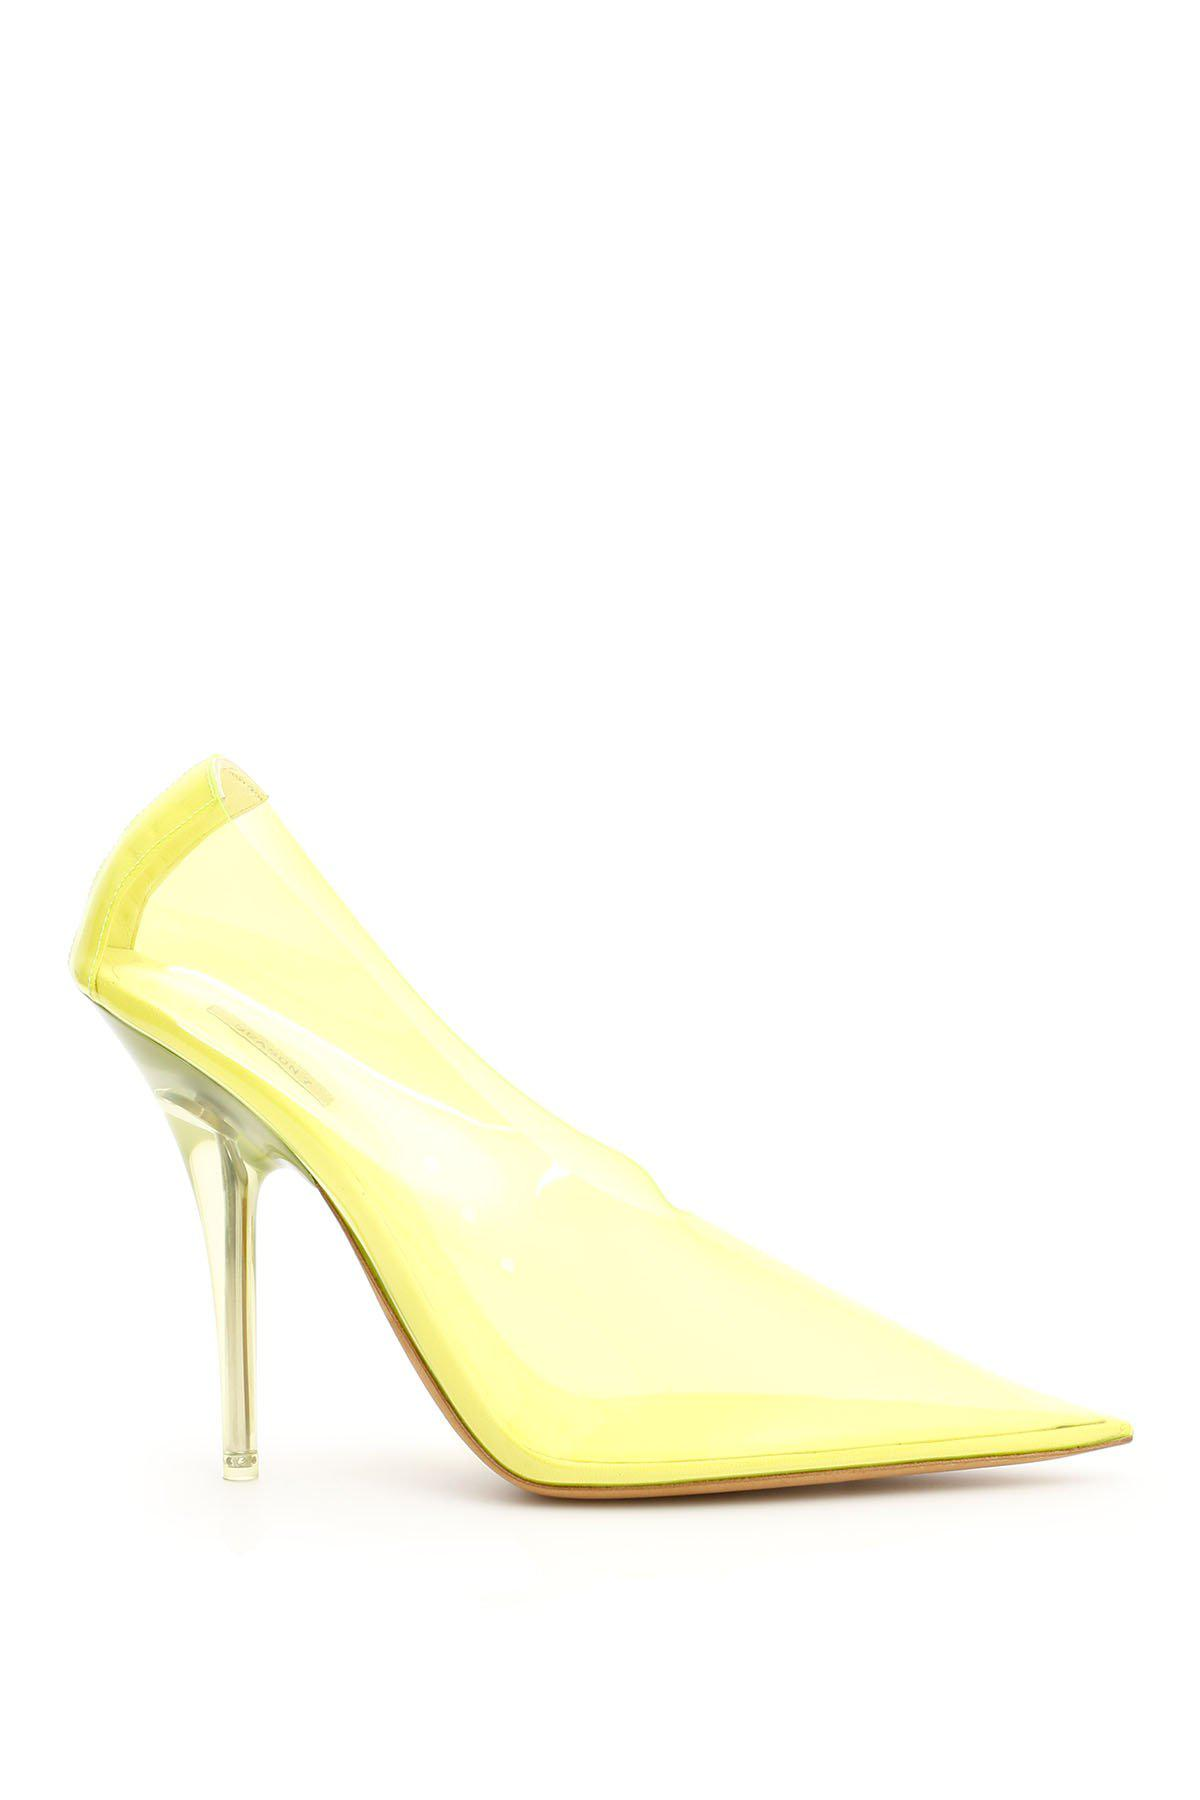 700fe26b6 Yeezy Yellow Tint Pvc Pumps By in Yellow - Lyst